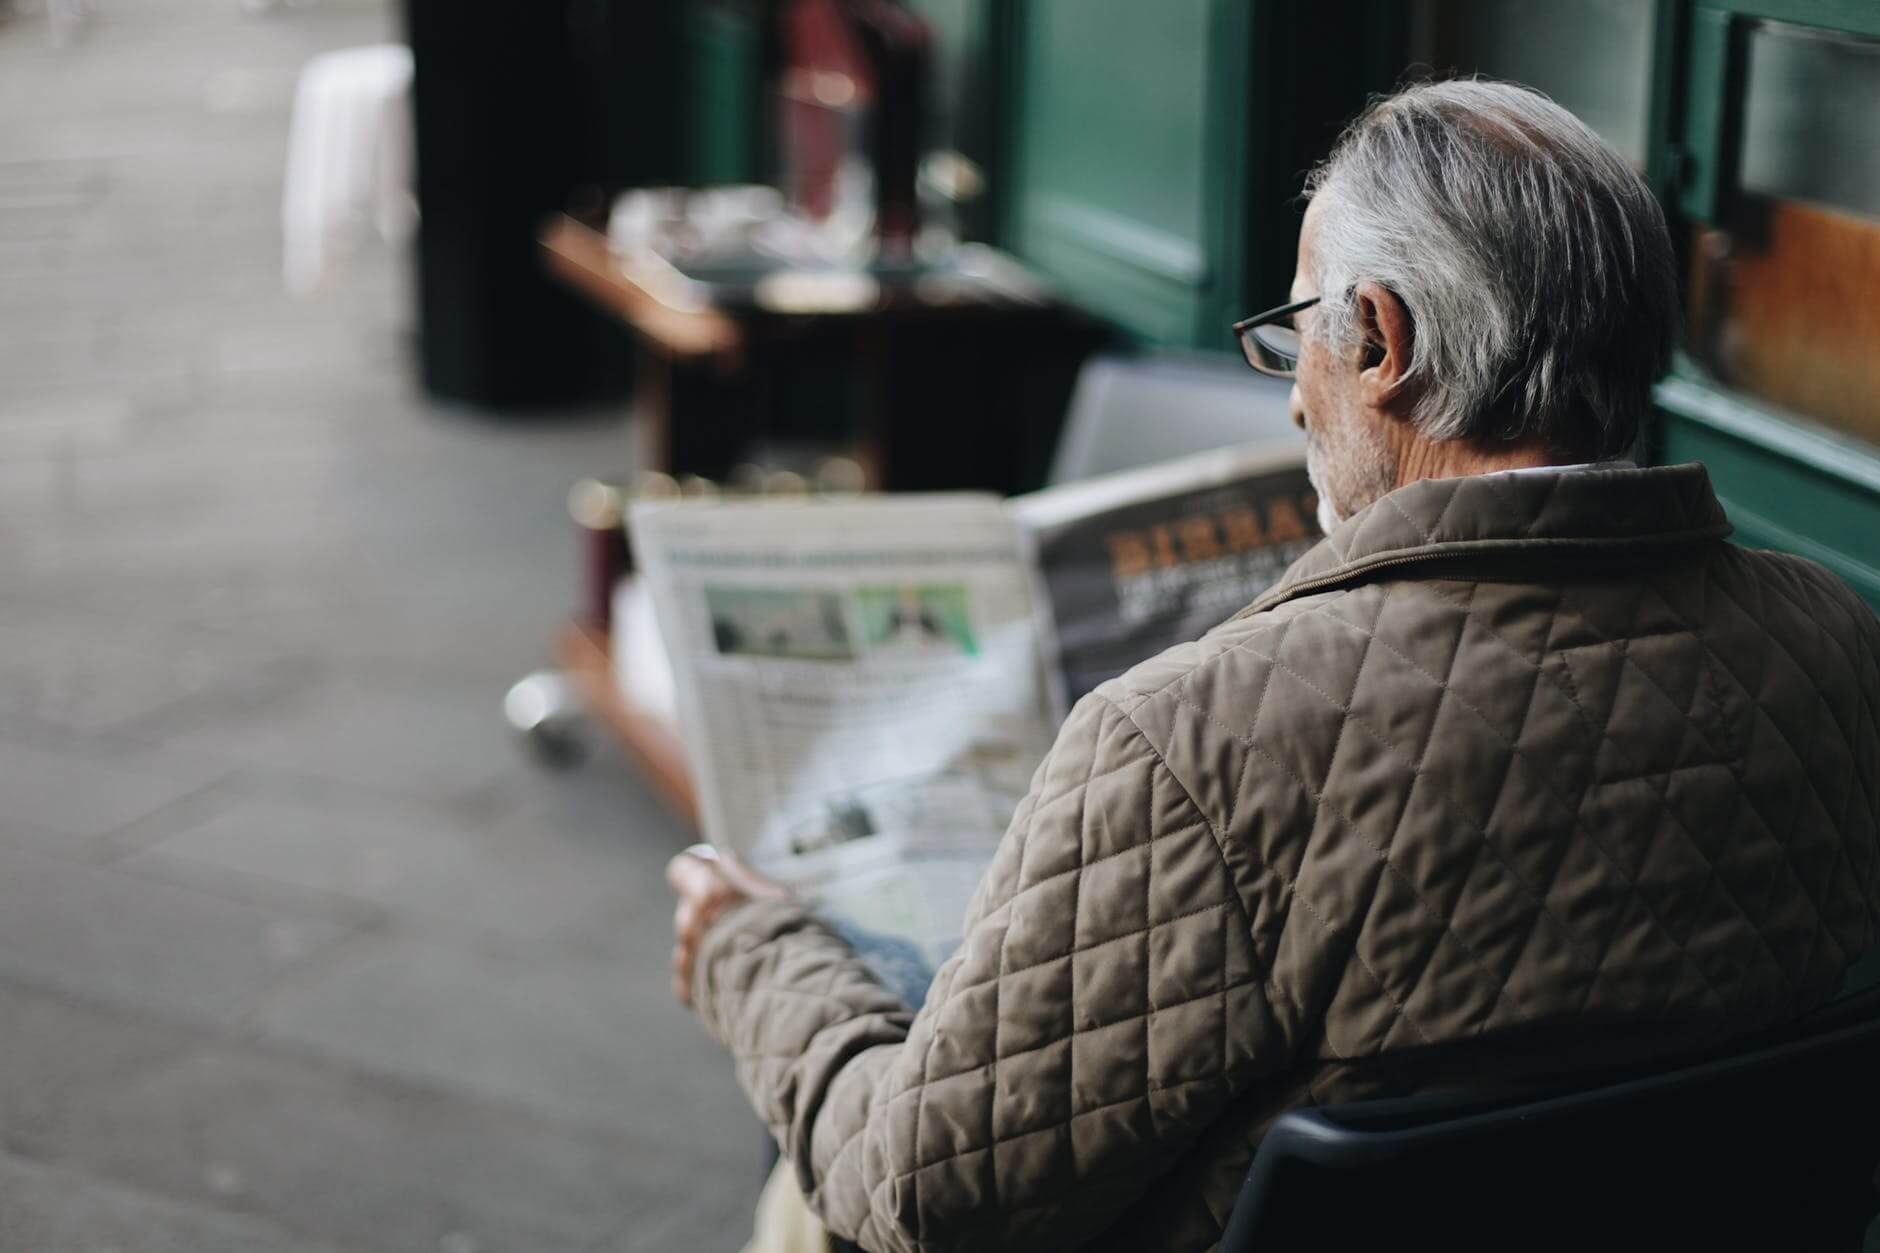 An older man reading a newspaper talking about the benefits of reading as we age